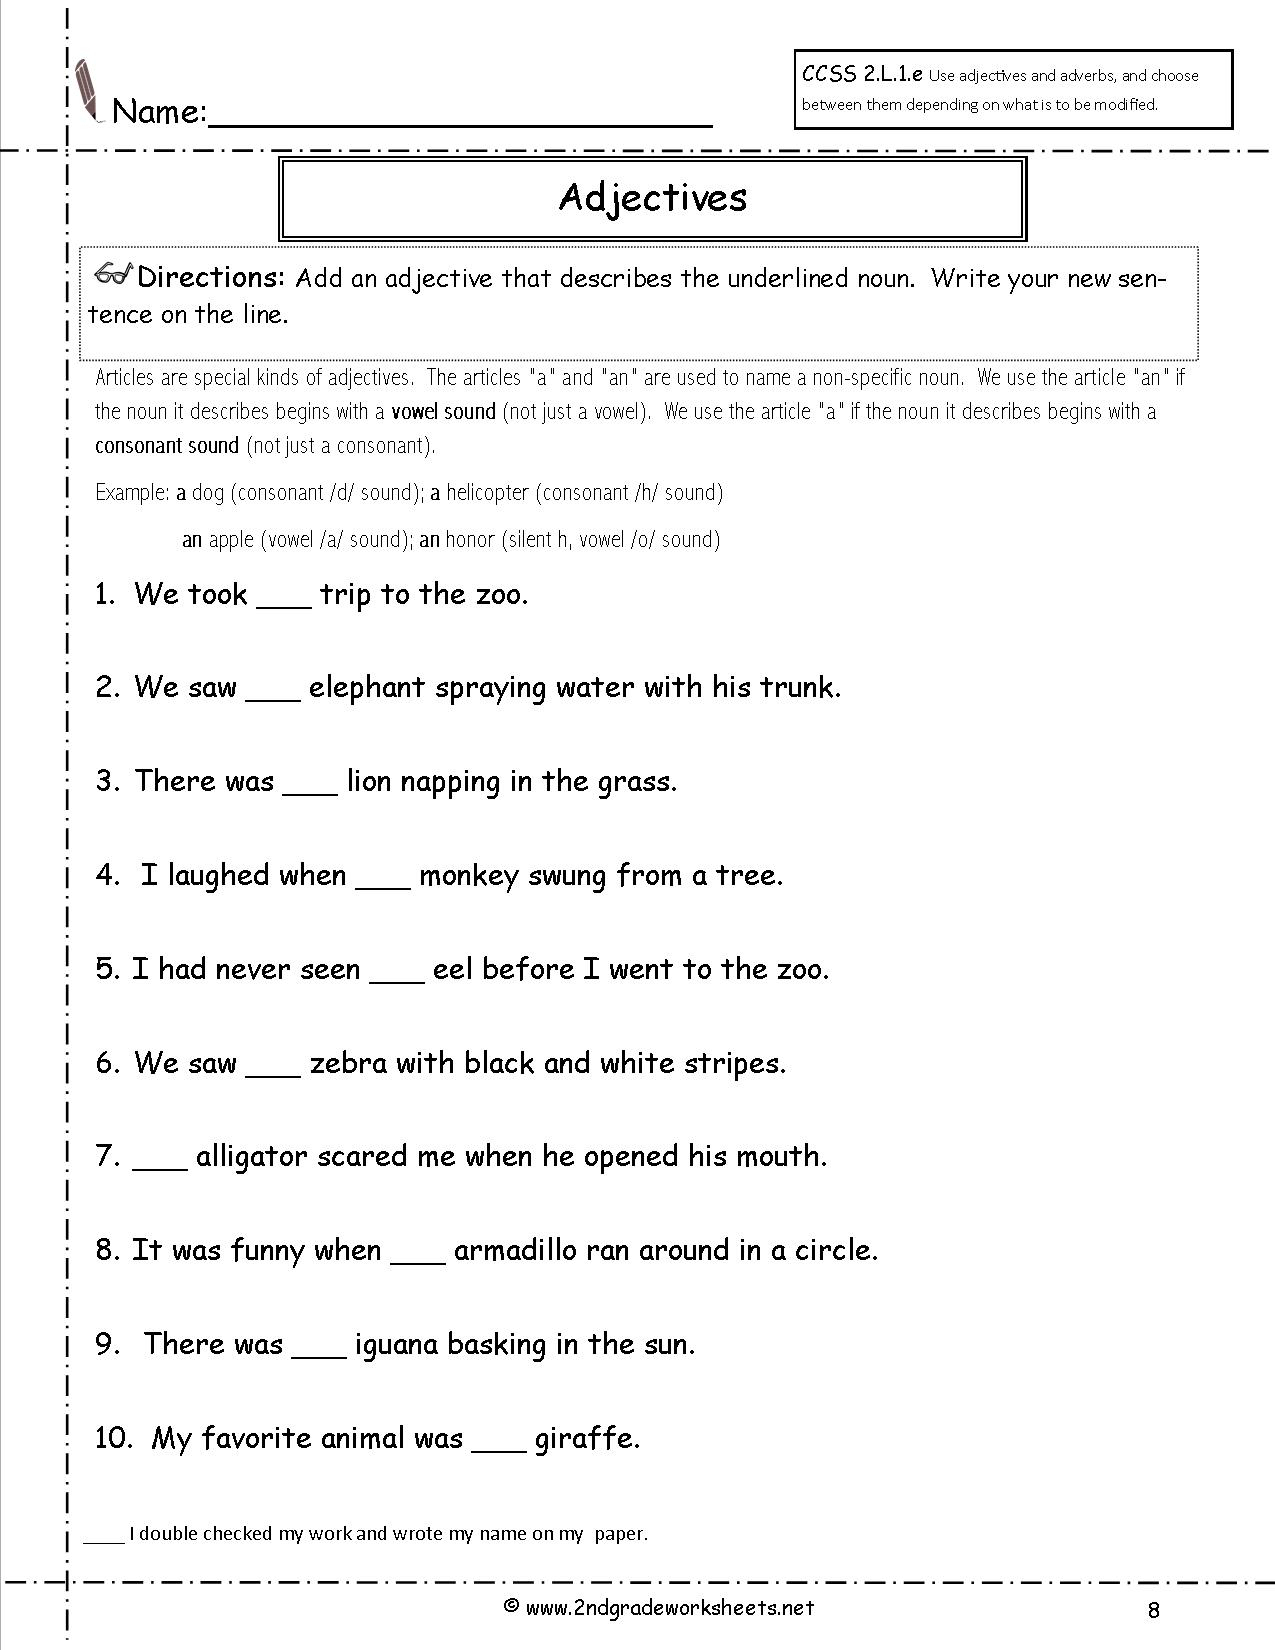 Free Printable Second Grade Worksheets » High School Worksheets - Free Printable Grammar Worksheets For Highschool Students